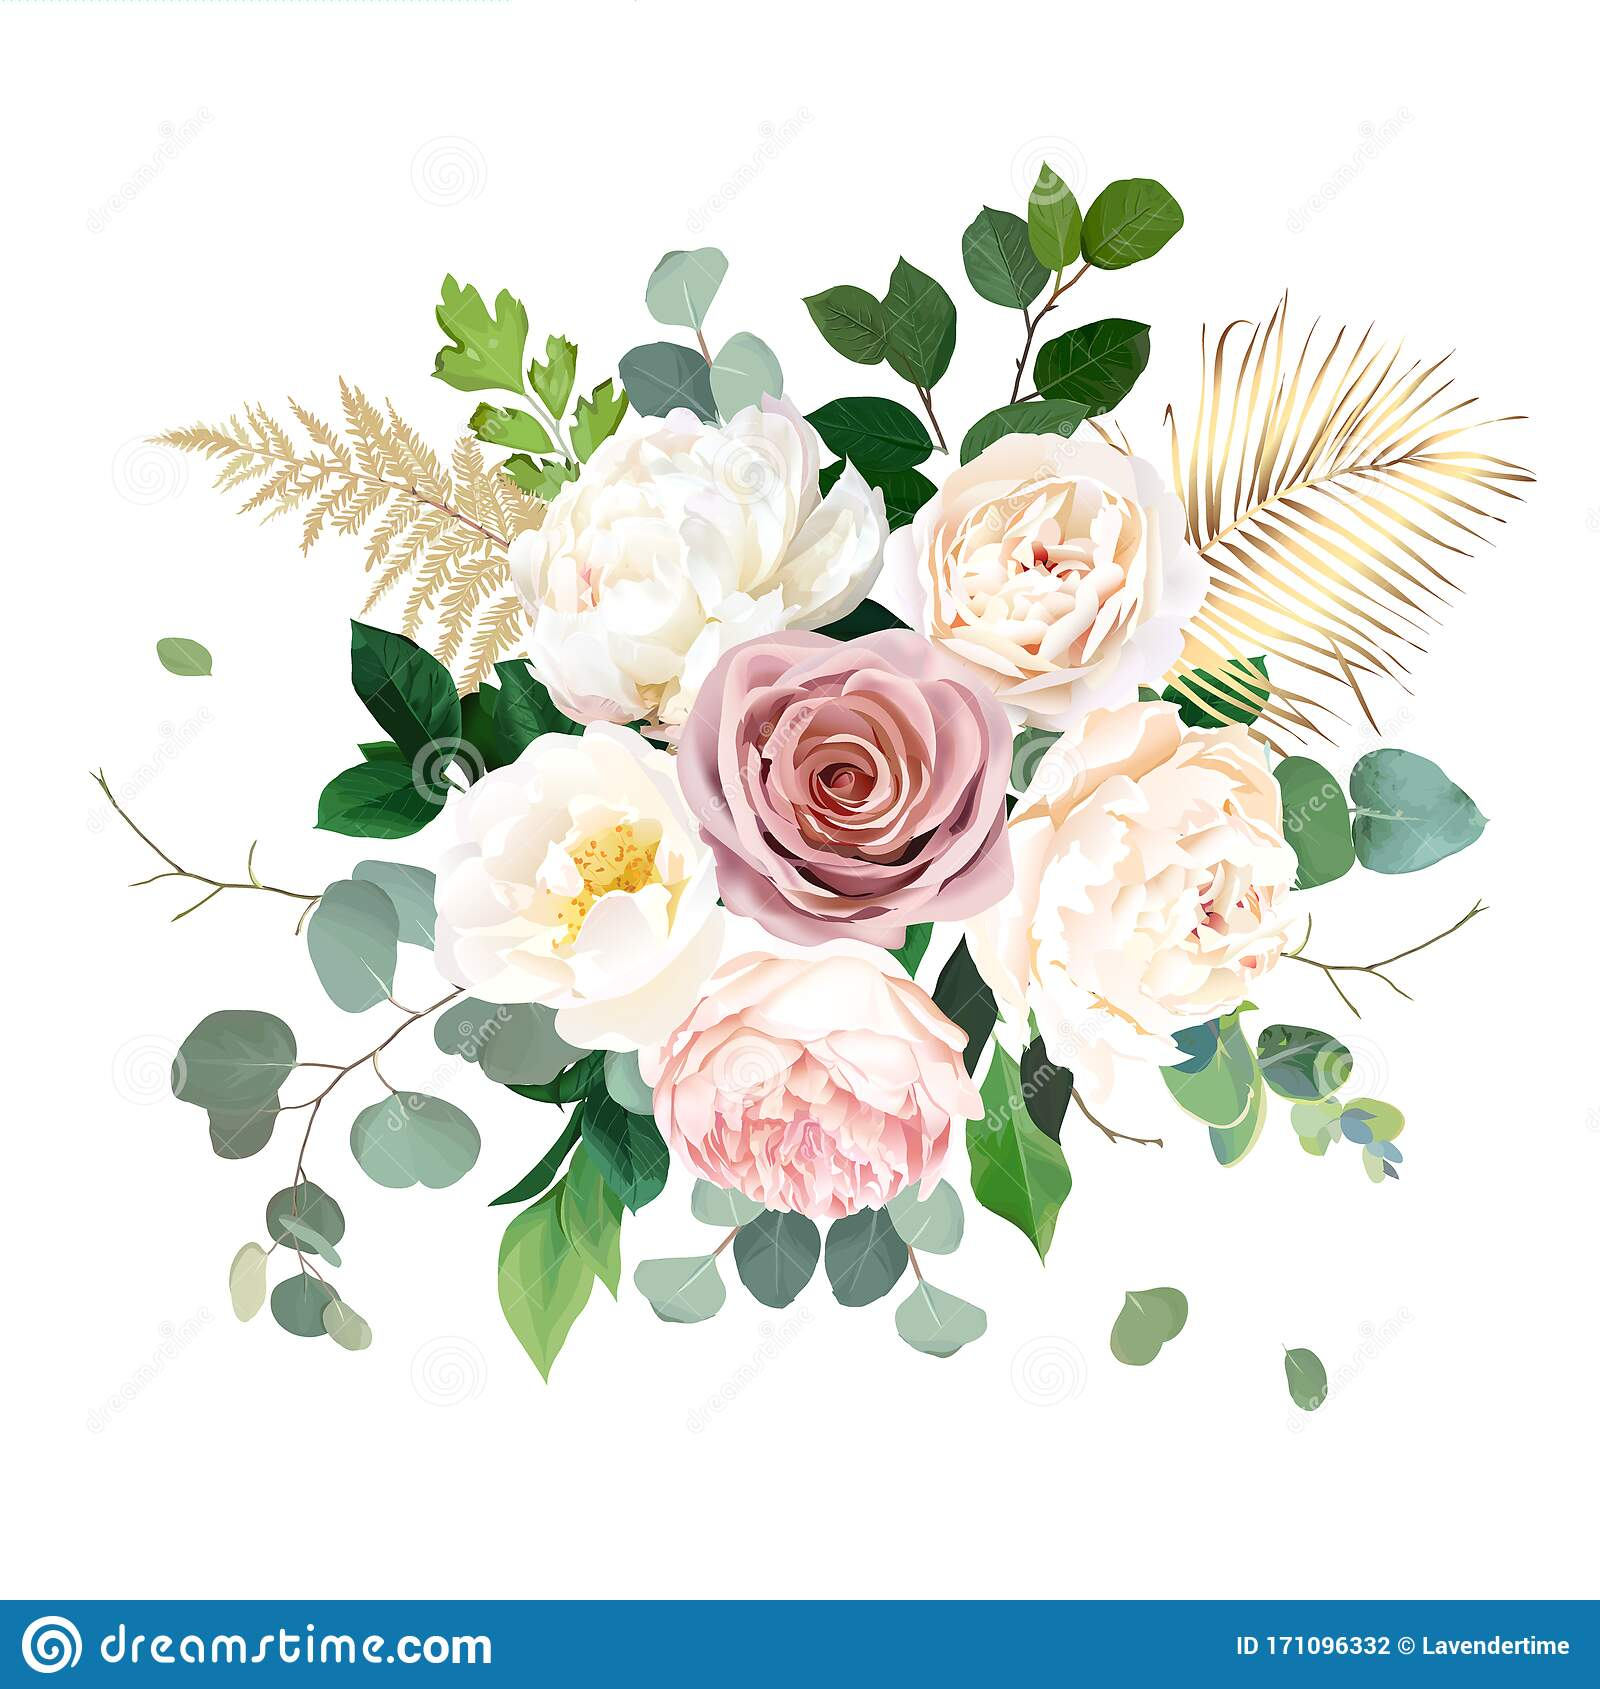 Dusty Pink Blush White And Creamy Rose Flowers Vector Design Wedding Bouquet Stock Vector Illustration Of Celebration Object 171096332